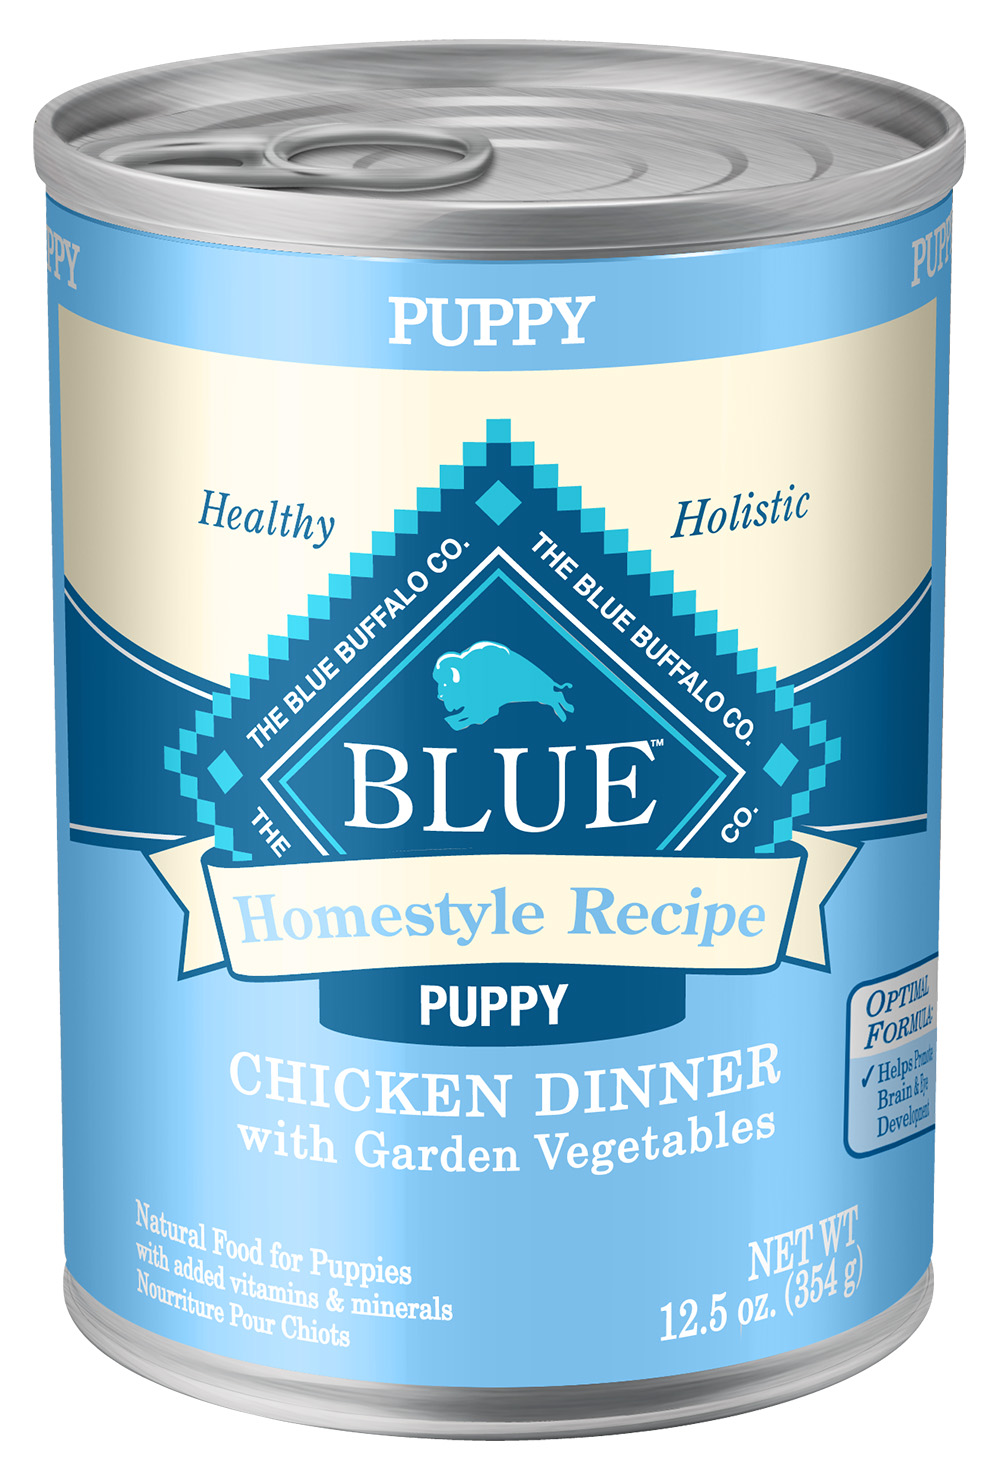 Blue Seal Natural Dog Food